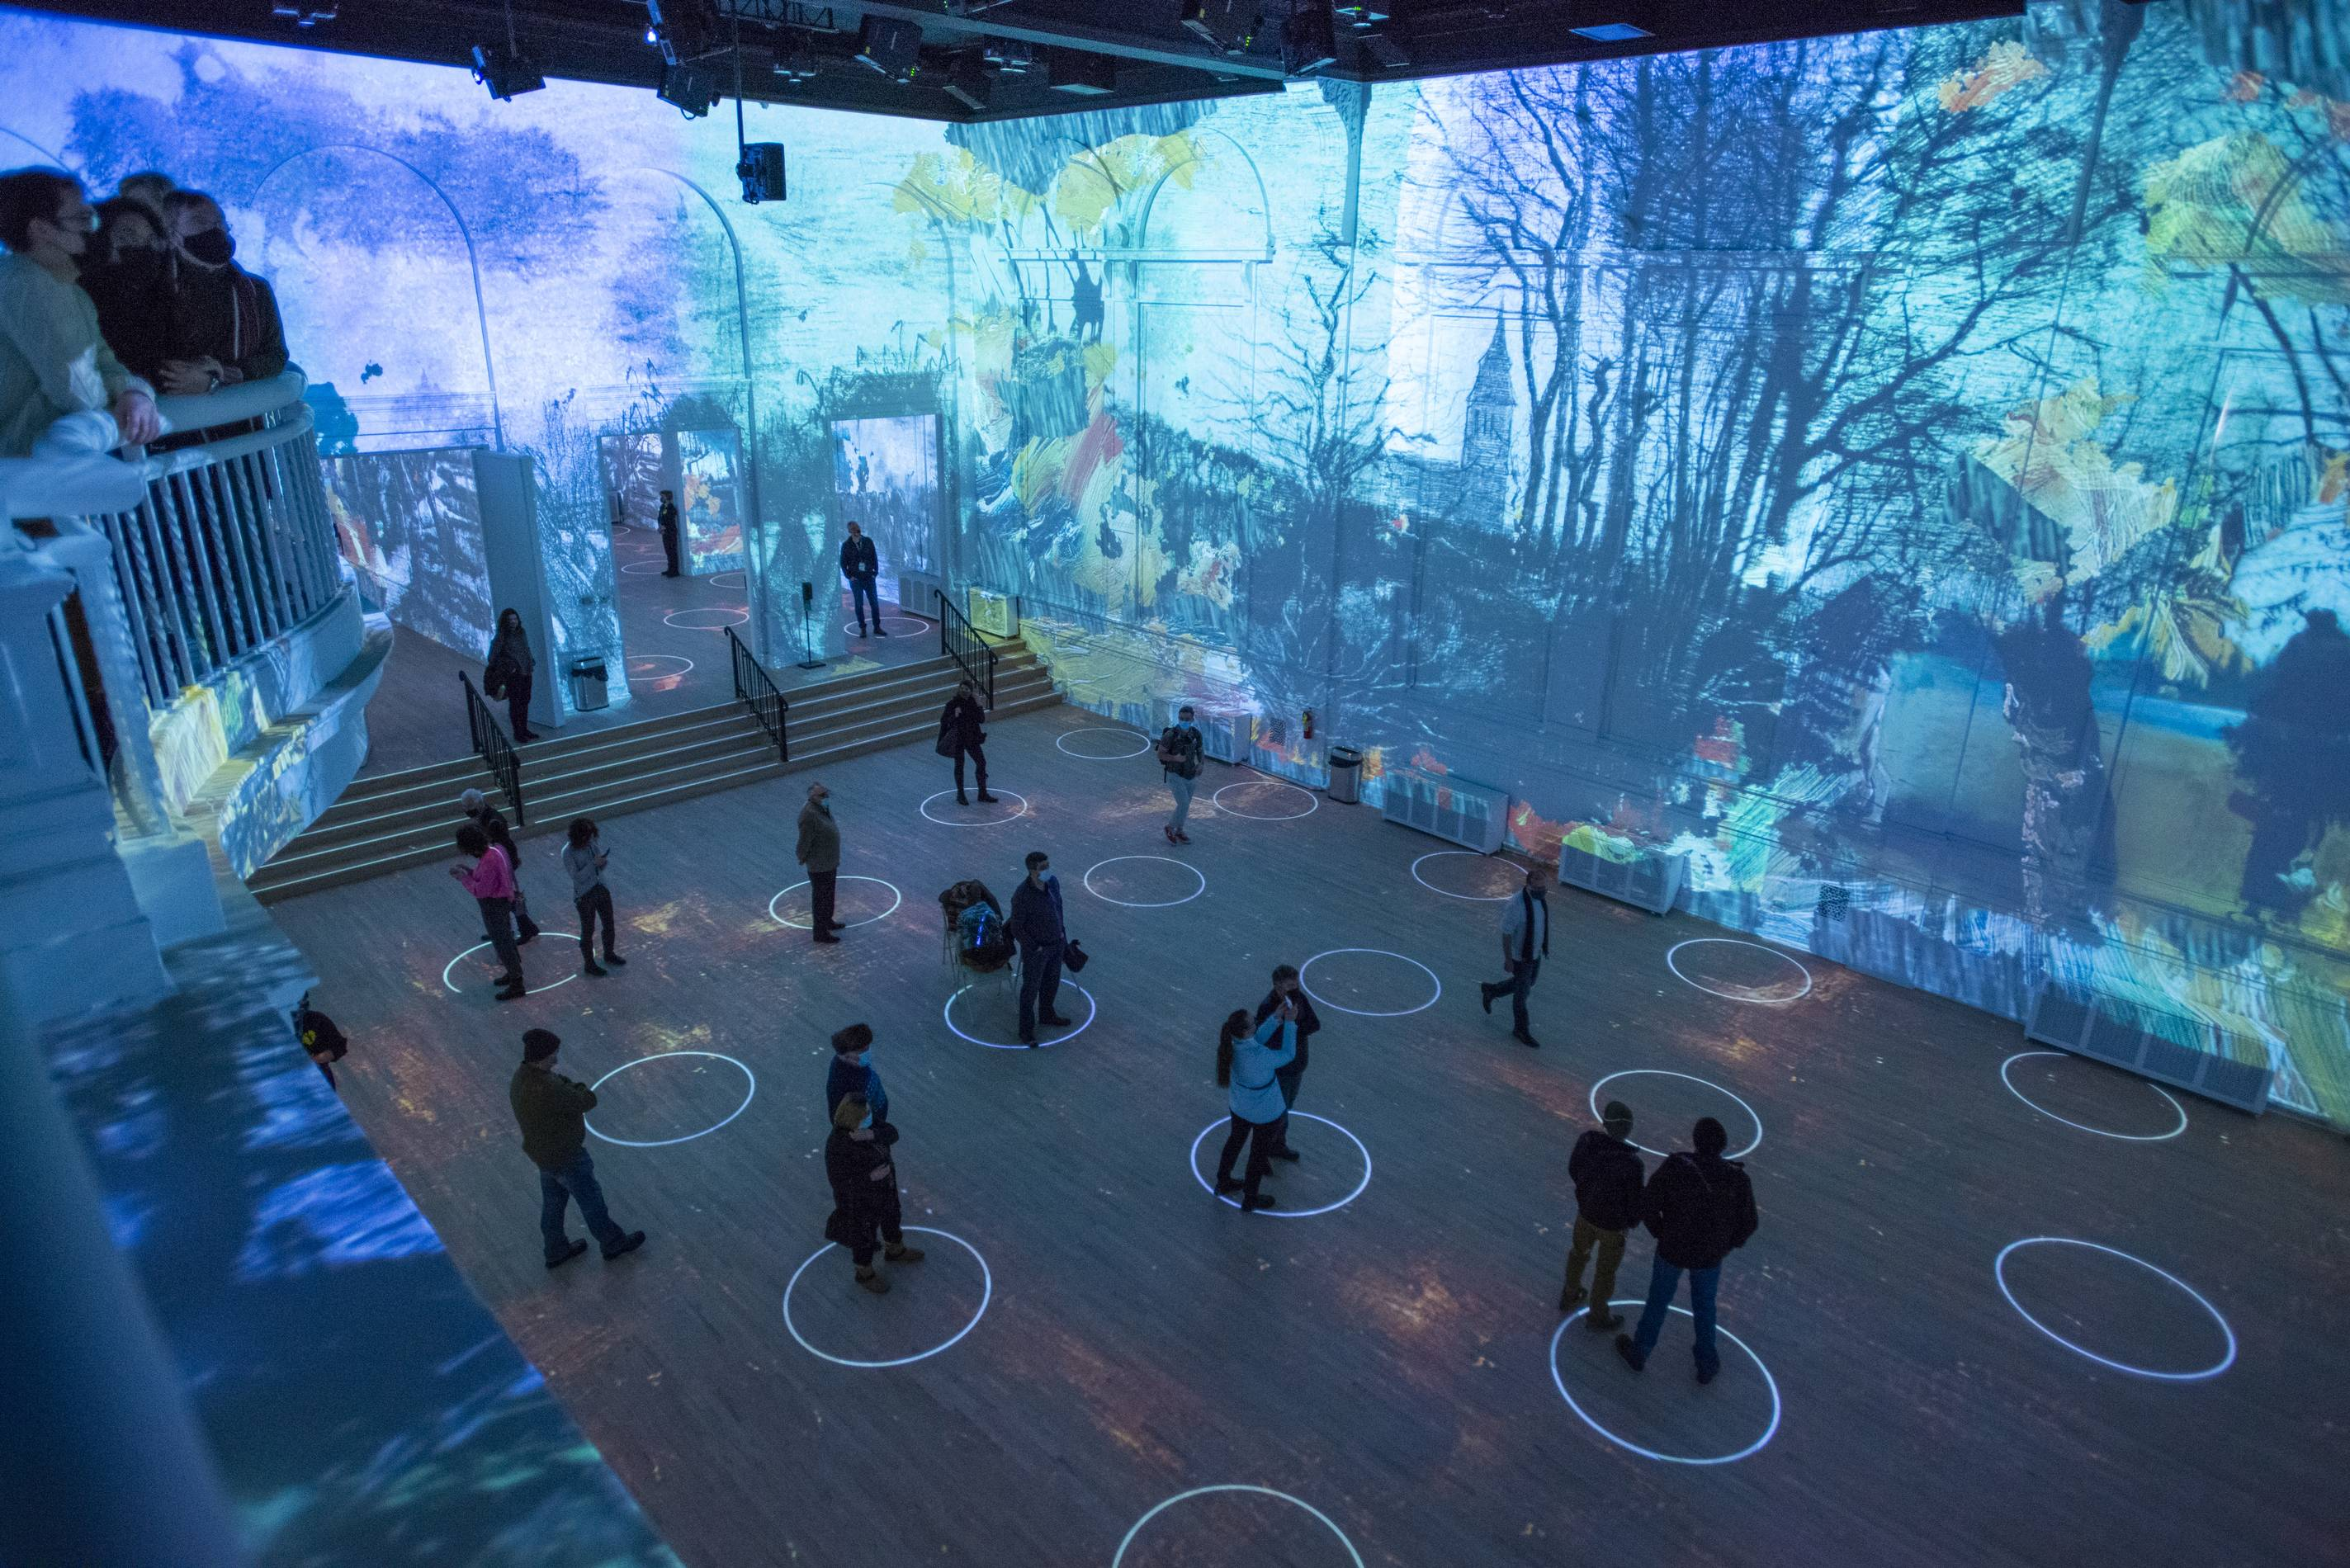 Immersive Van Gogh Chicago